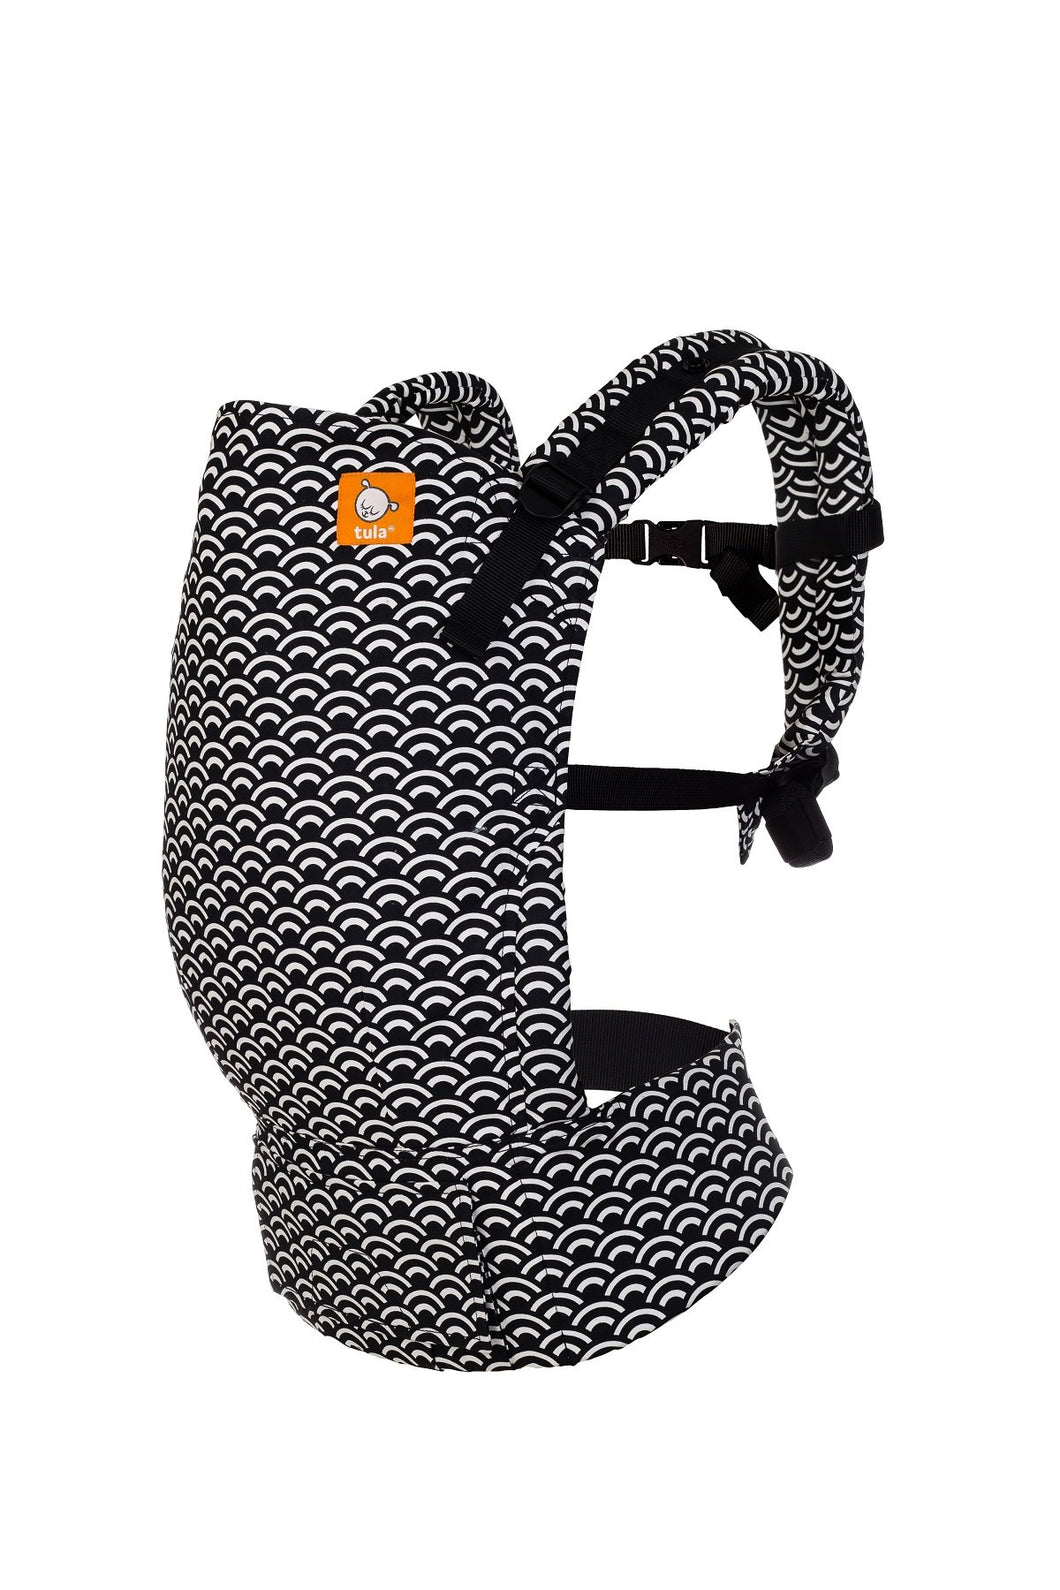 Tempo - Tula Standard Carrier - Baby Tula UK